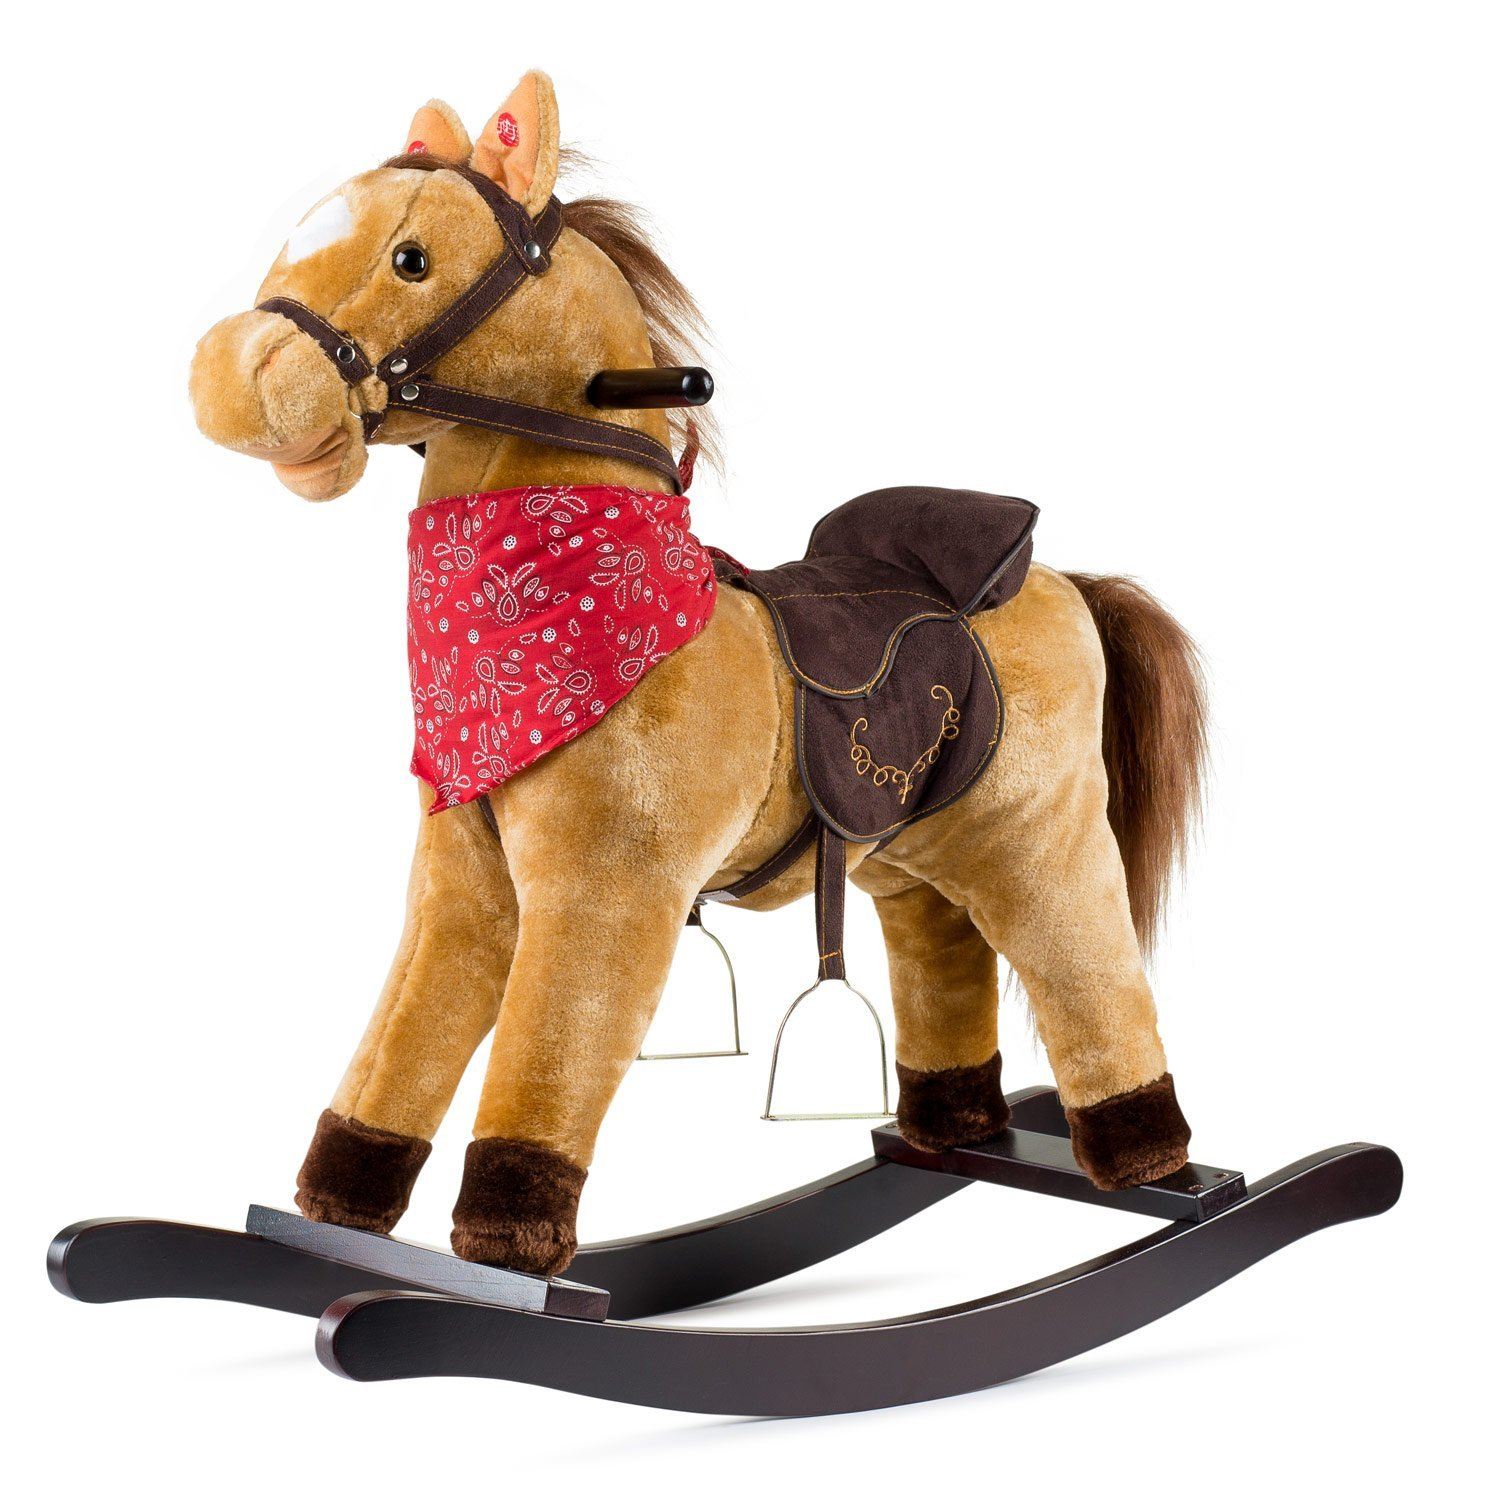 Amazon.com: Cowboy Rocking Horse - Tan Brown: Toys & Games